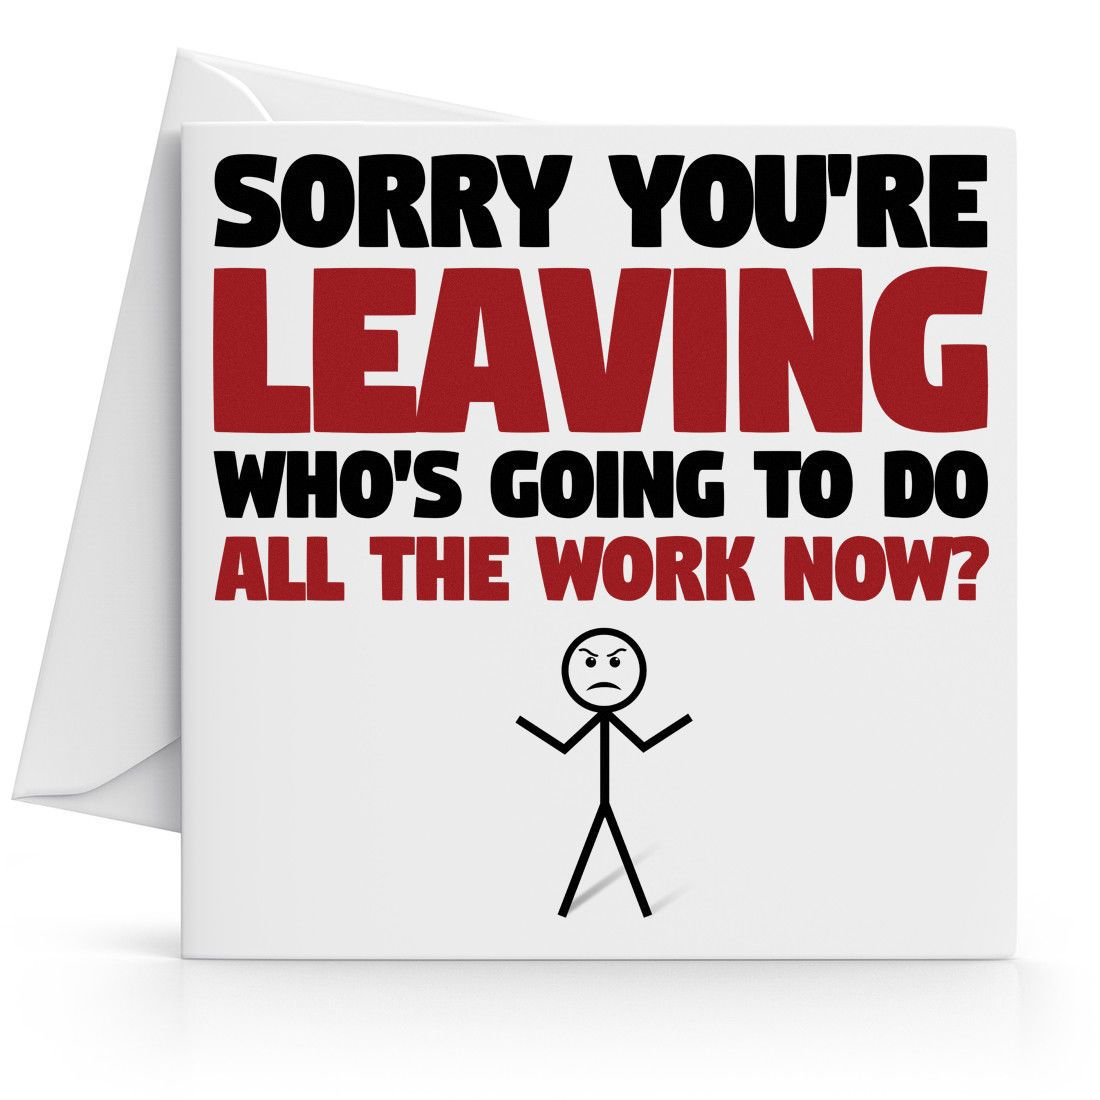 Funny Humorous Sorry Your Leaving Card Perfect For Work Colleagues 15 X 15 Cm Ebay Leaving Cards Funny Leaving Cards Leaving Work Quotes